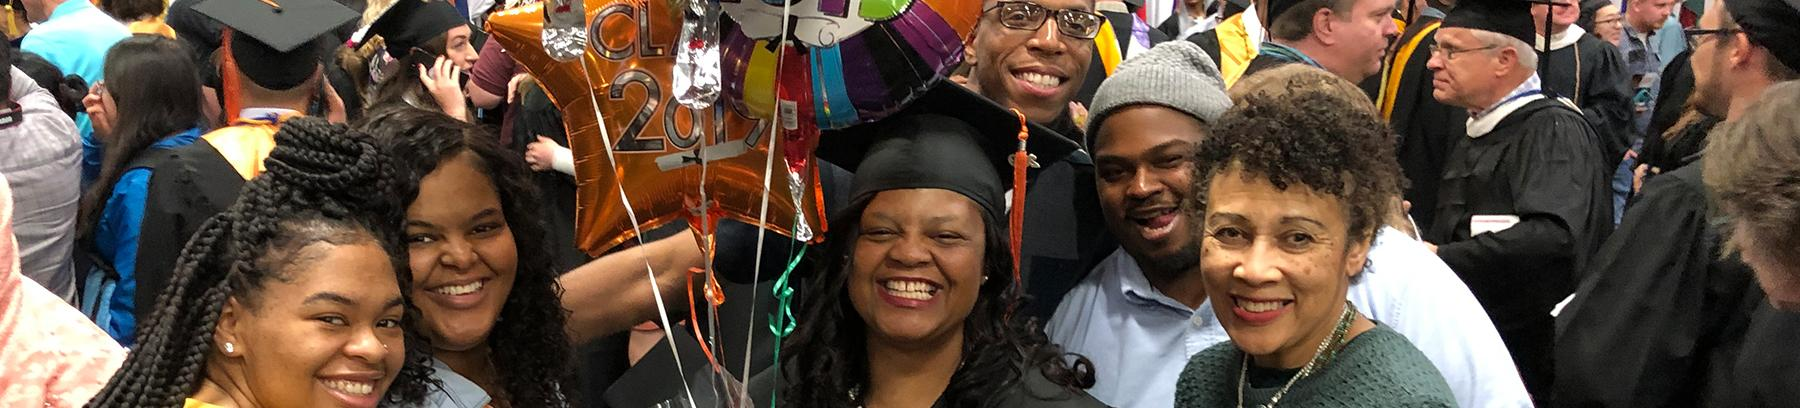 Family photo with 2019 college graduate.